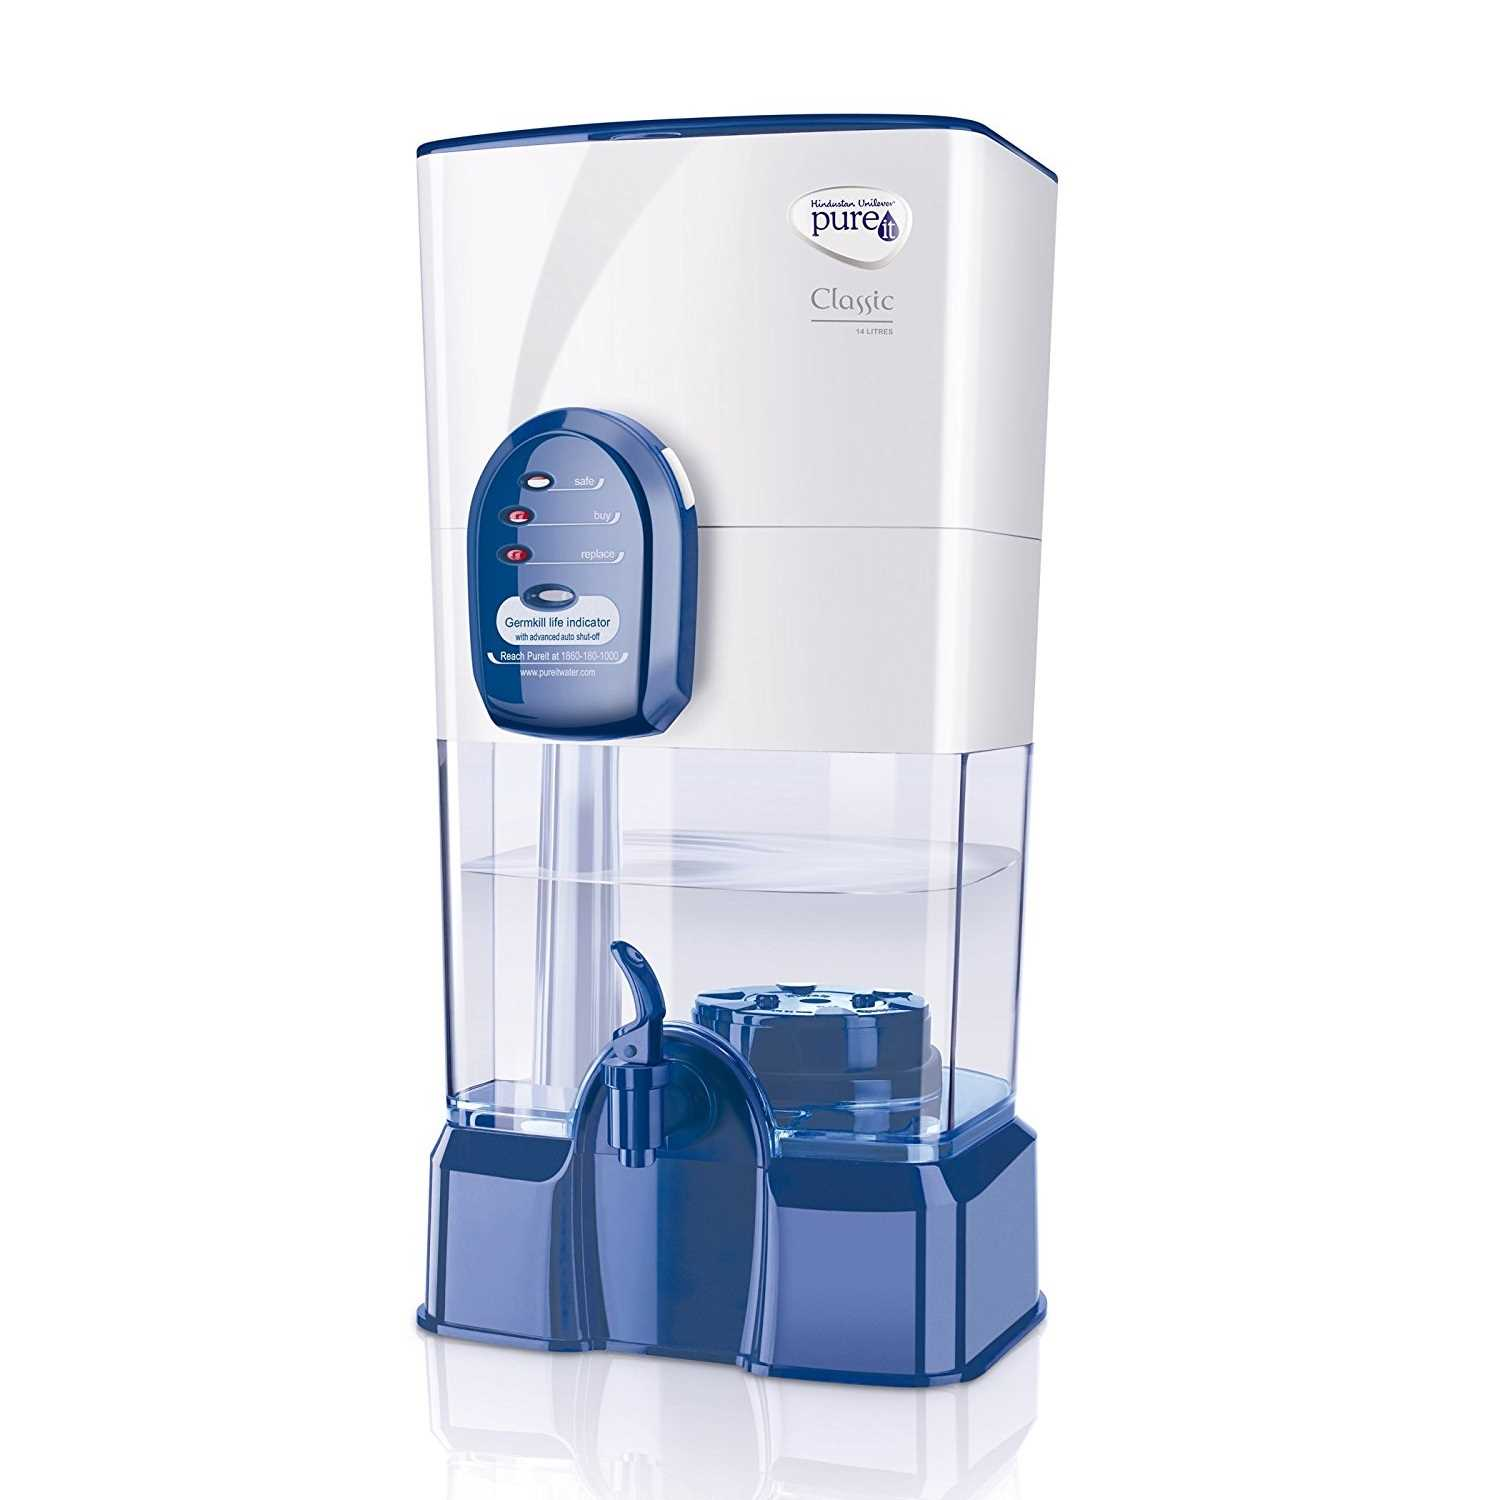 HUL Pureit Classic 14 Litre Water Purifier